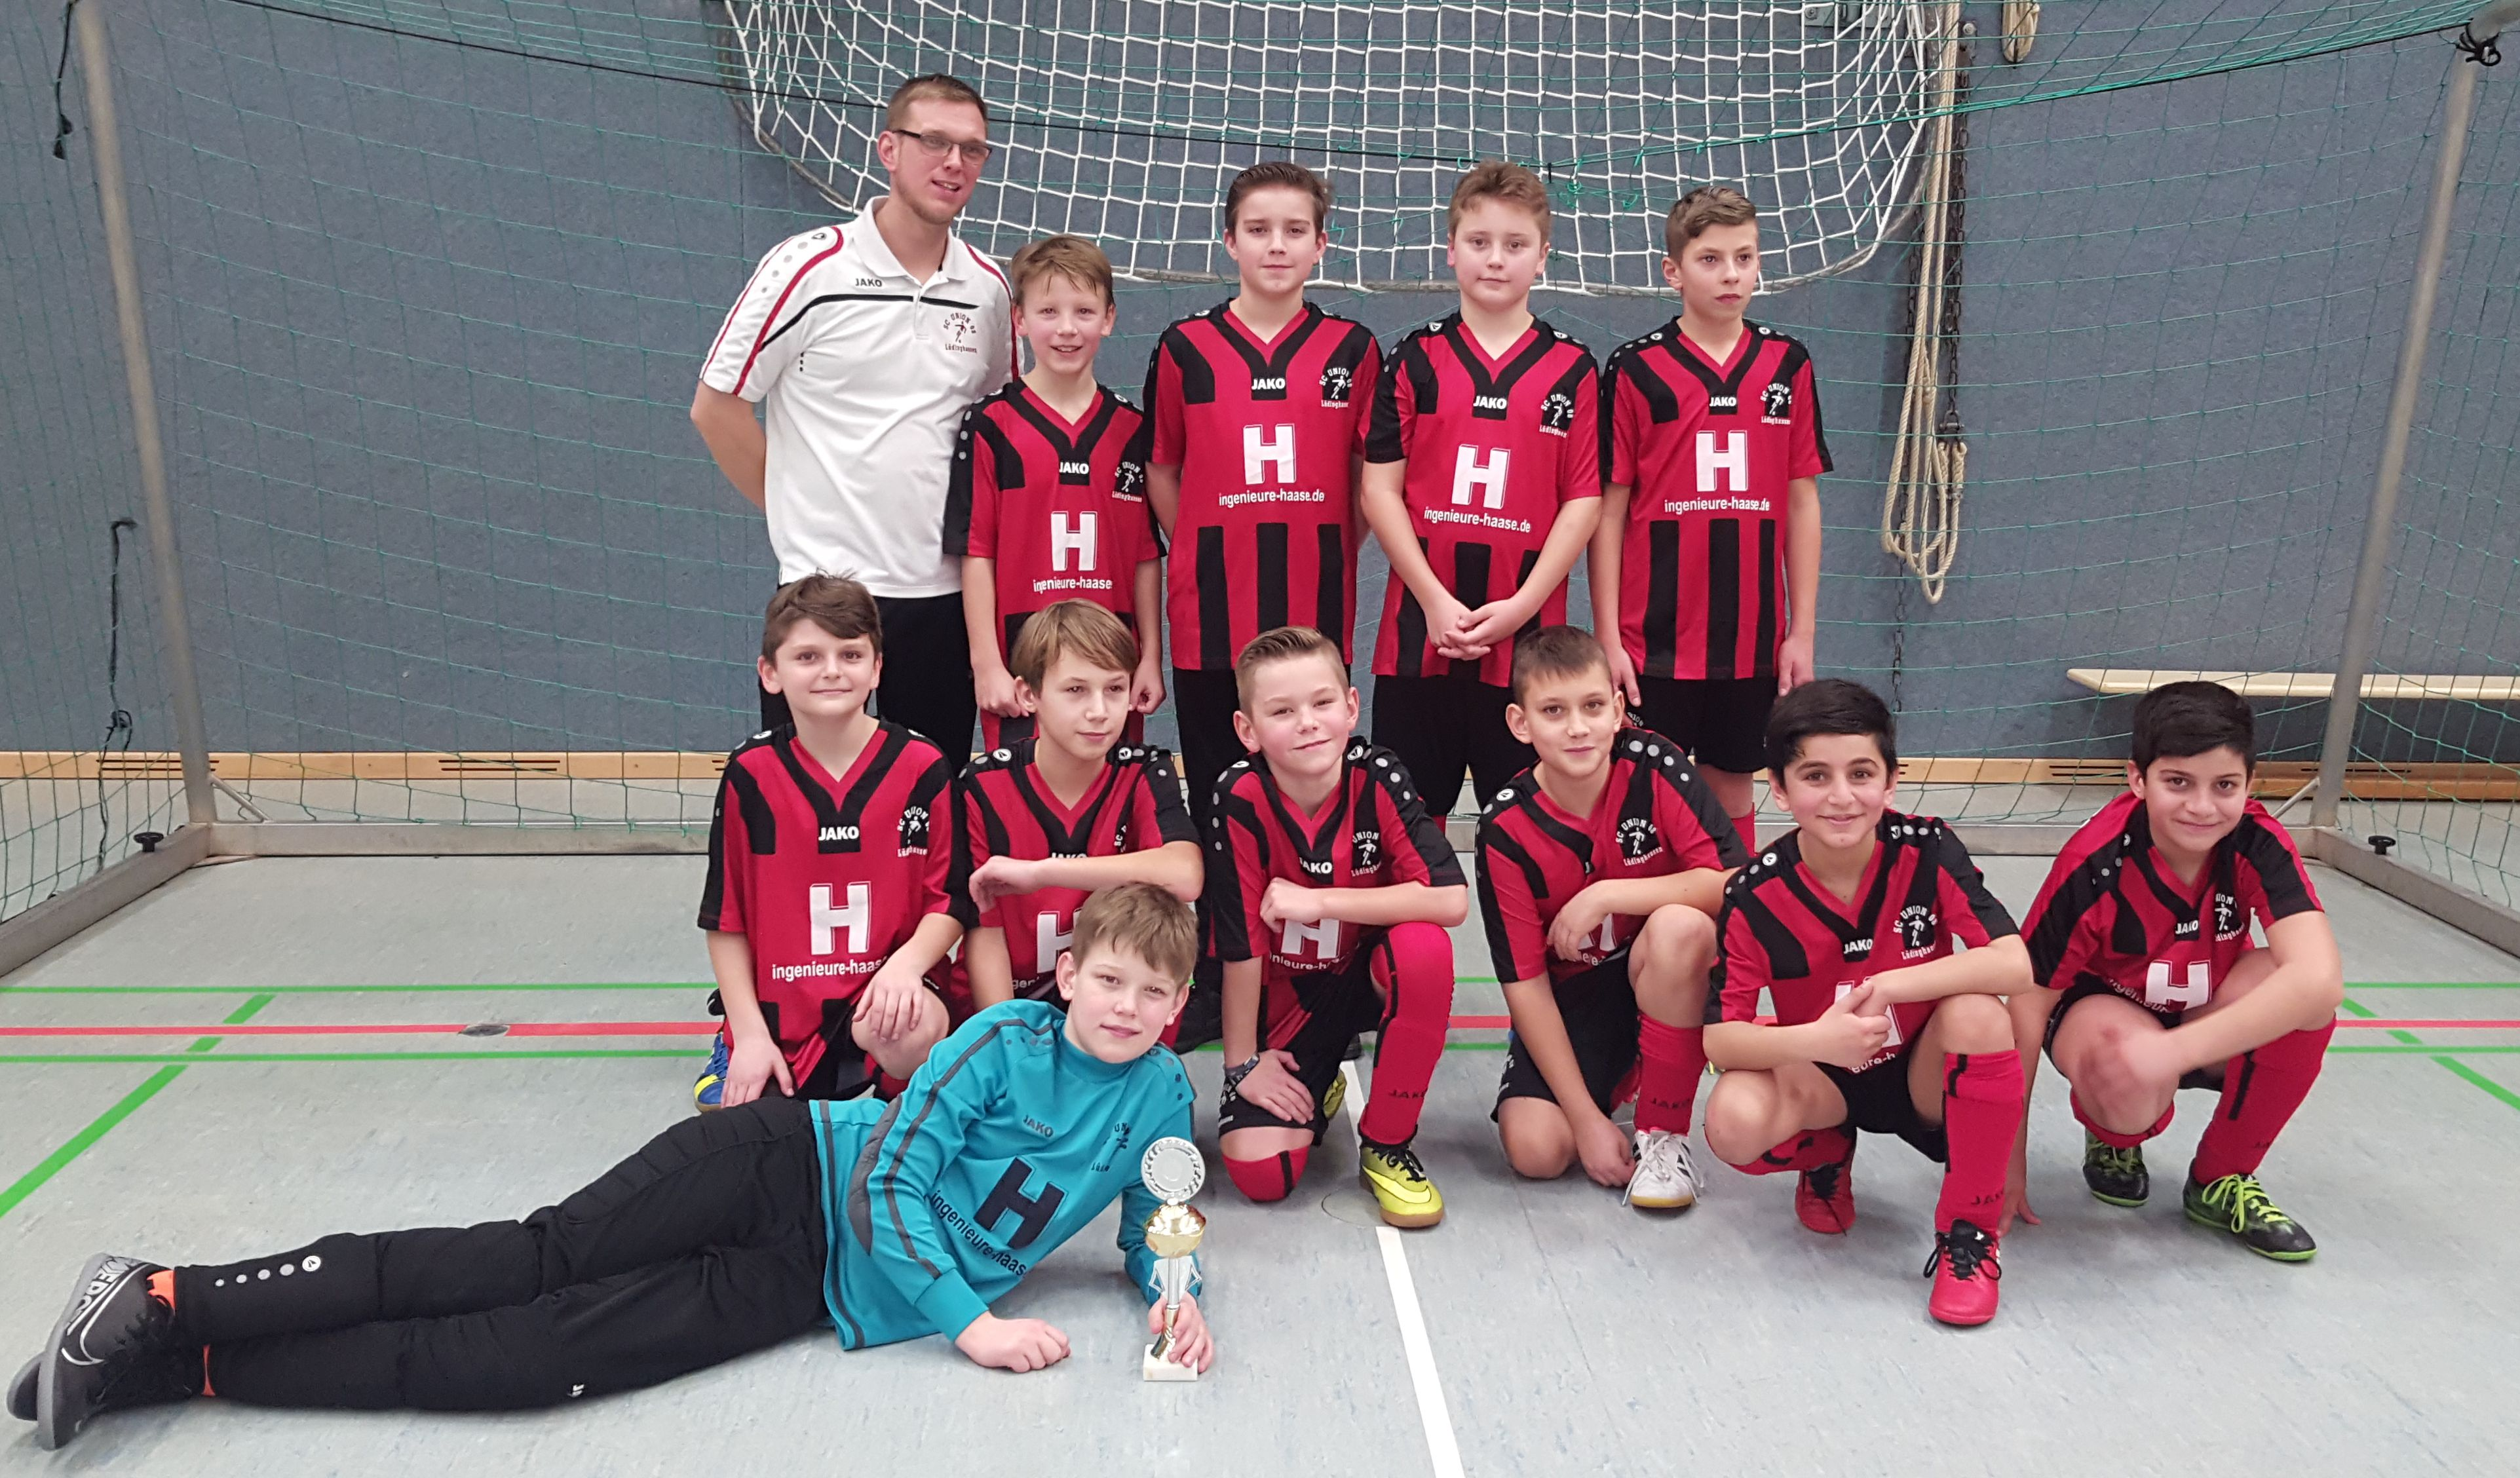 Union Lüdinghausen U11 - Karnevalsturnier in Ascheberg